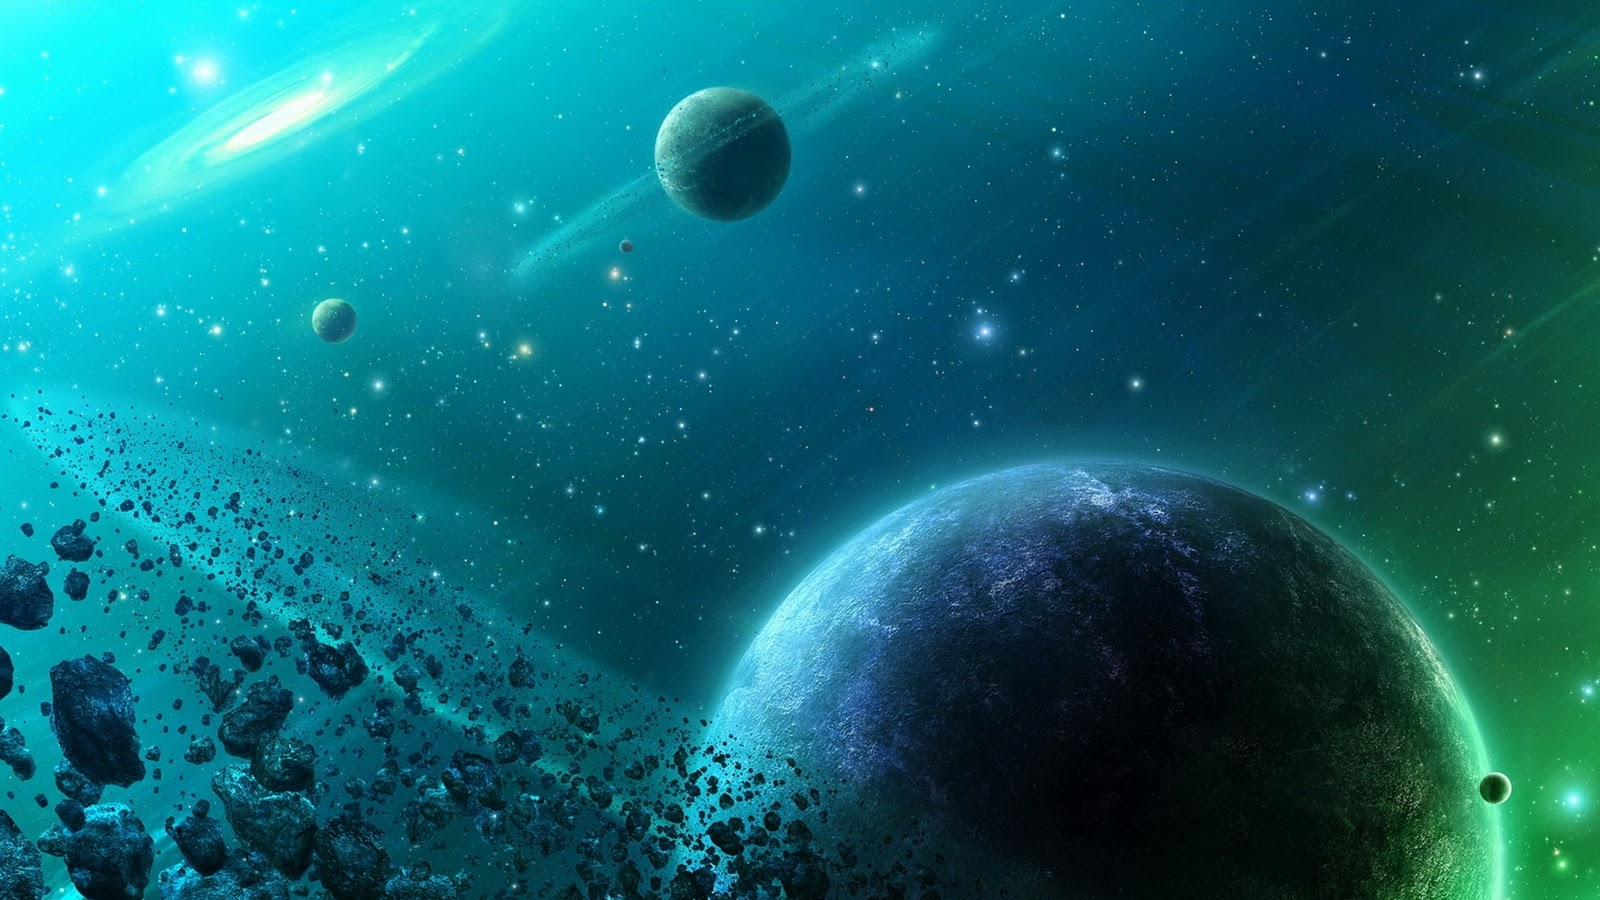 space wallpapers for desktop -#main